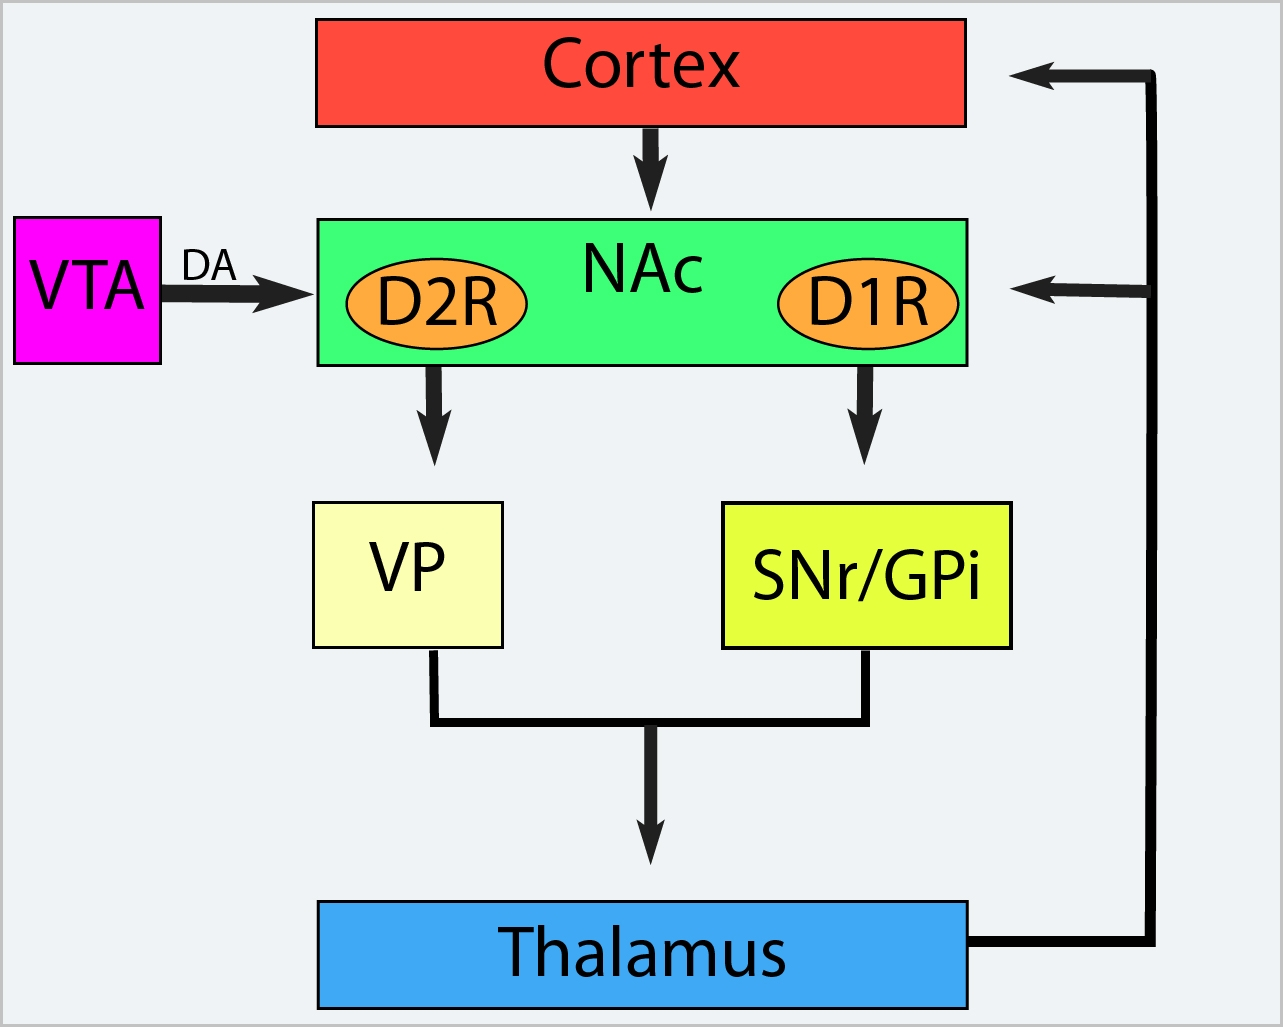 Circuitry of the basal ganglia nuclei associated with the limbic system. NAc, nucleus accumbens; VTA, ventral tegmental area; DA, dopamine; D2R, dopamine 2 receptor; D1R, dopamine 1 receptor; VP, ventral pallidum, SNr, substantia nigra pars reticulata; GPi, internal segment of the globus pallidus.